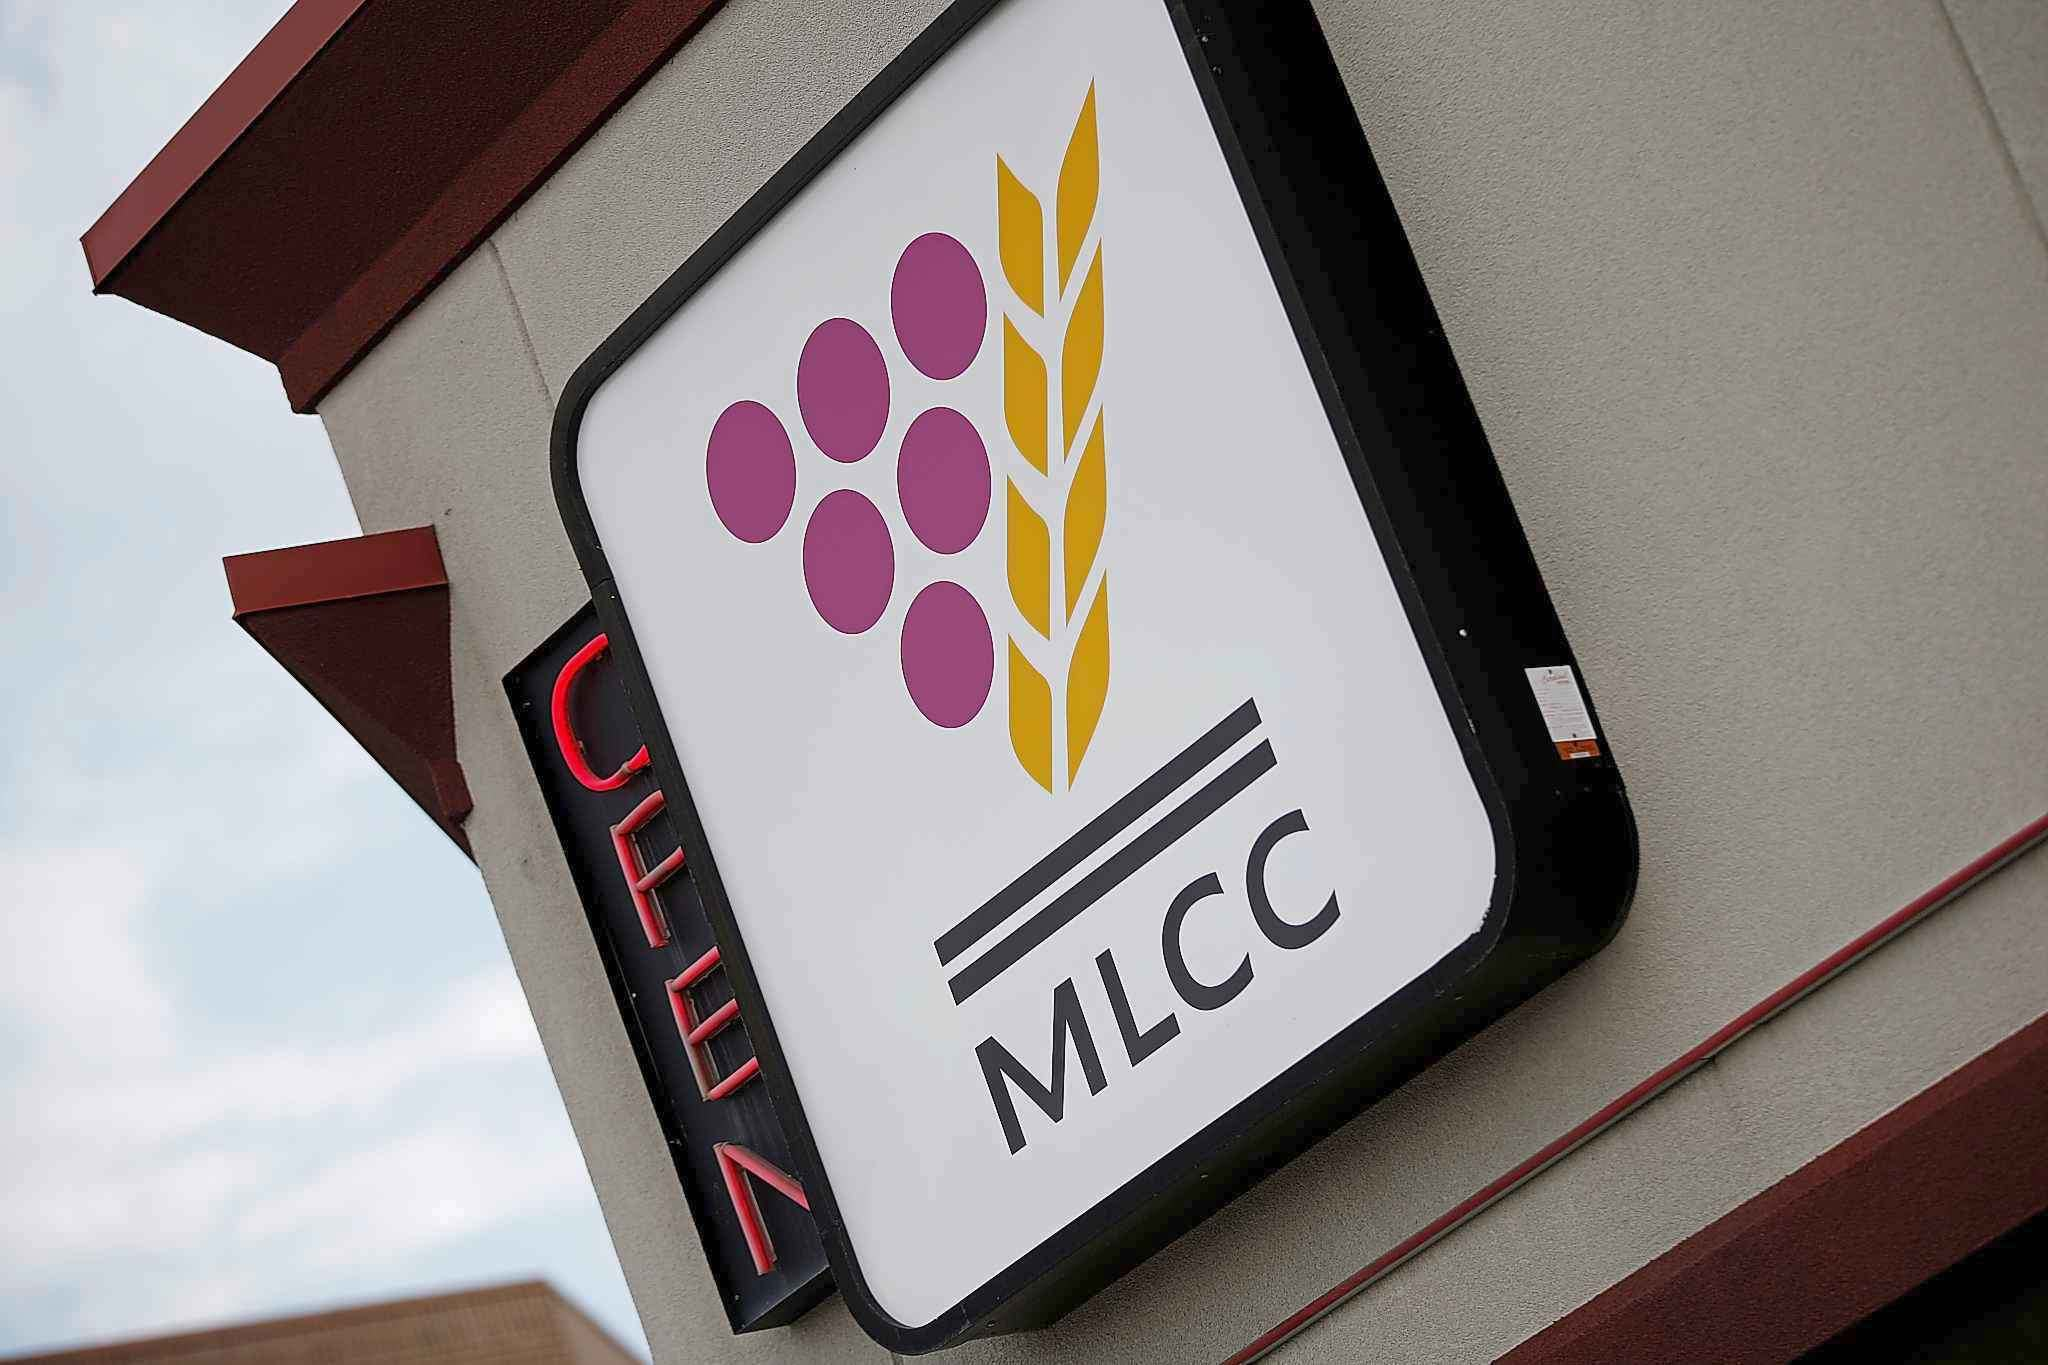 <p>2018 saw an uptick in violent thefts at Manitoba Liquor stores by increasingly brazen perpatrators.</p>